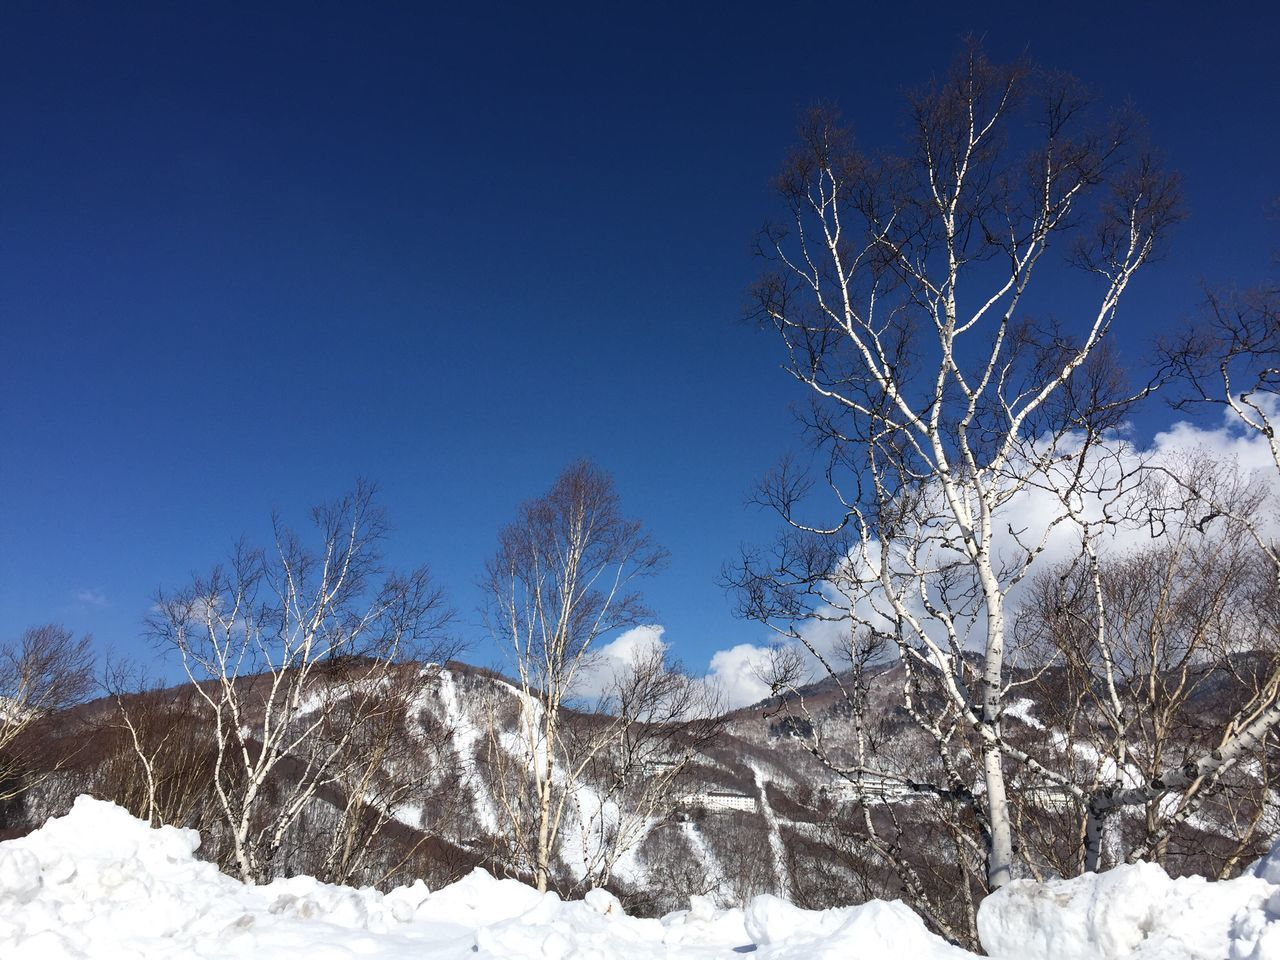 Ski week Snow Cold Temperature Tree Winter Clear Sky Blue Nature Low Angle View Bare Tree Beauty In Nature Branch Outdoors Scenics No People Tranquility Day Sky Ski Ski Holiday Ski Resort  Mountain Snowcapped Mountain Cloud - Sky Weather Nagano Prefecture,Japan